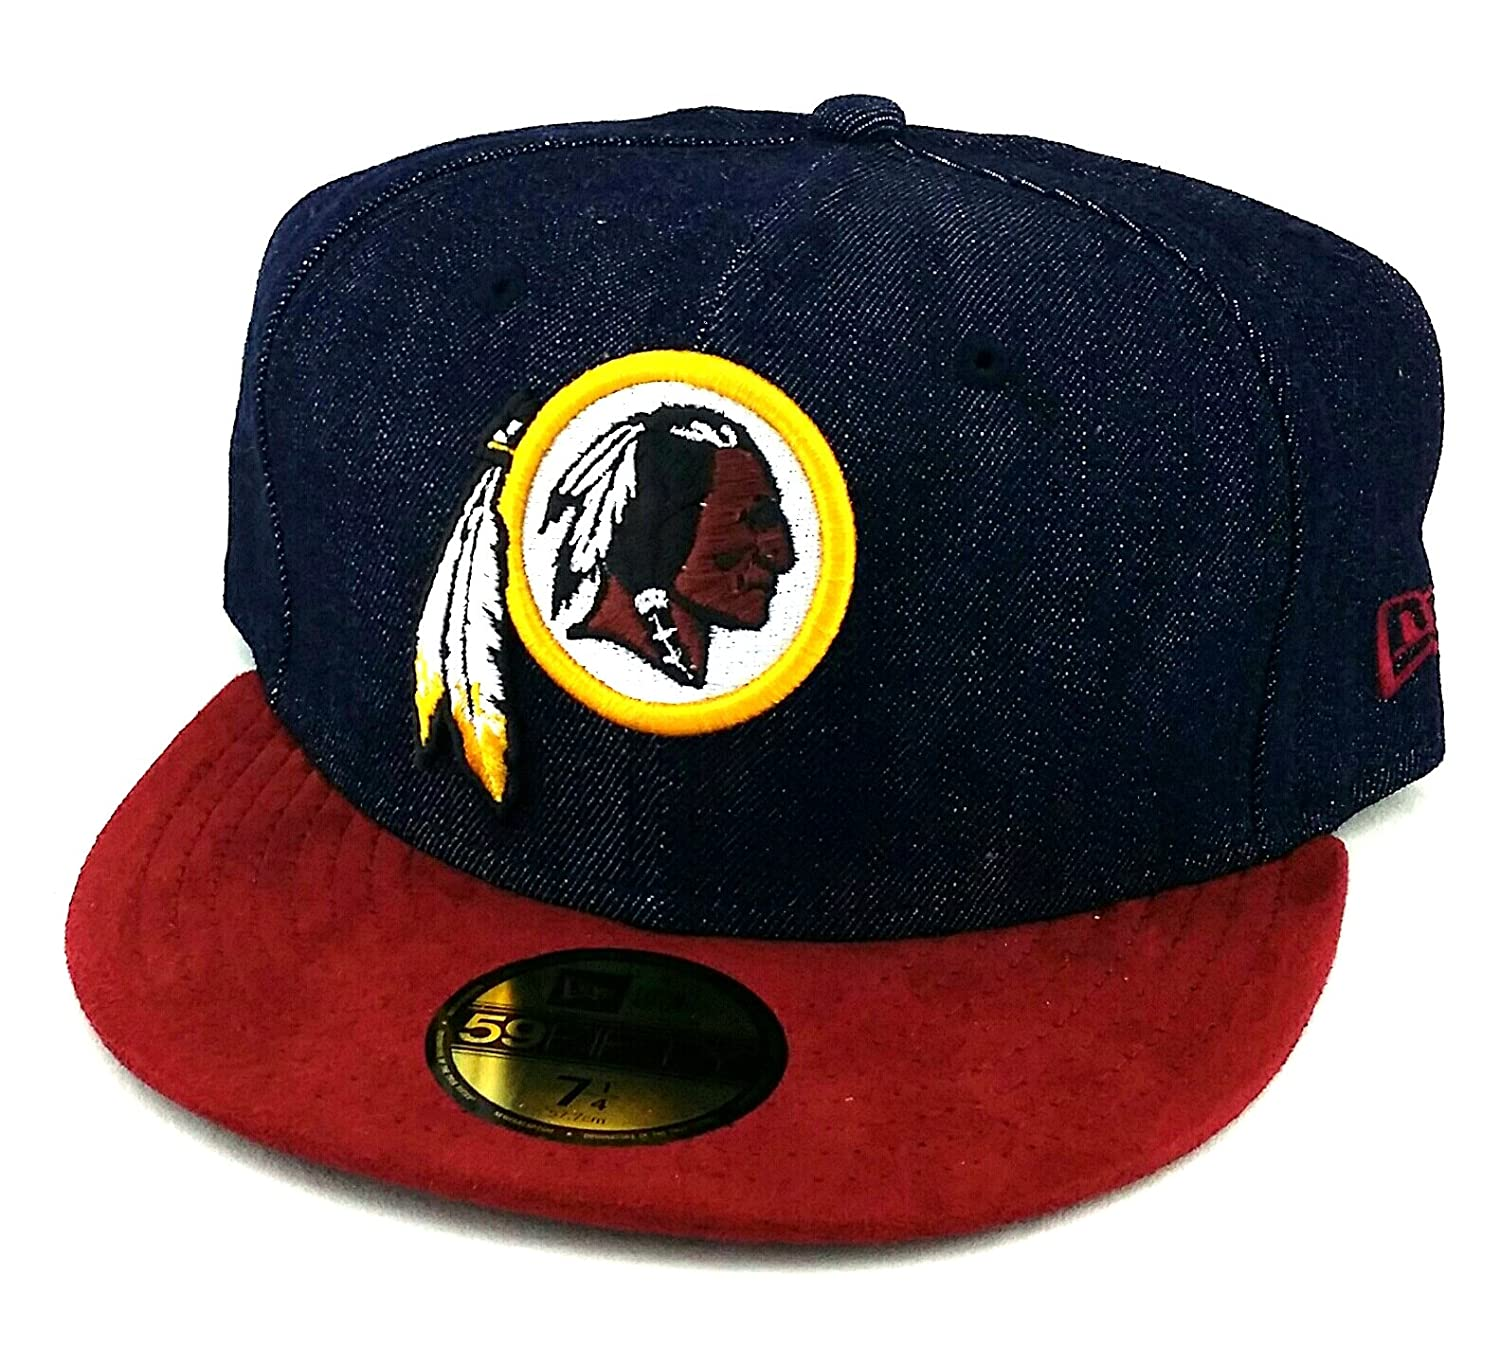 Amazon.com   Washington Redskins New Era 59Fifty Denim Suede Blue Burgundy Fitted  Hat 7 1 4   Sports   Outdoors 904f56d56a4c